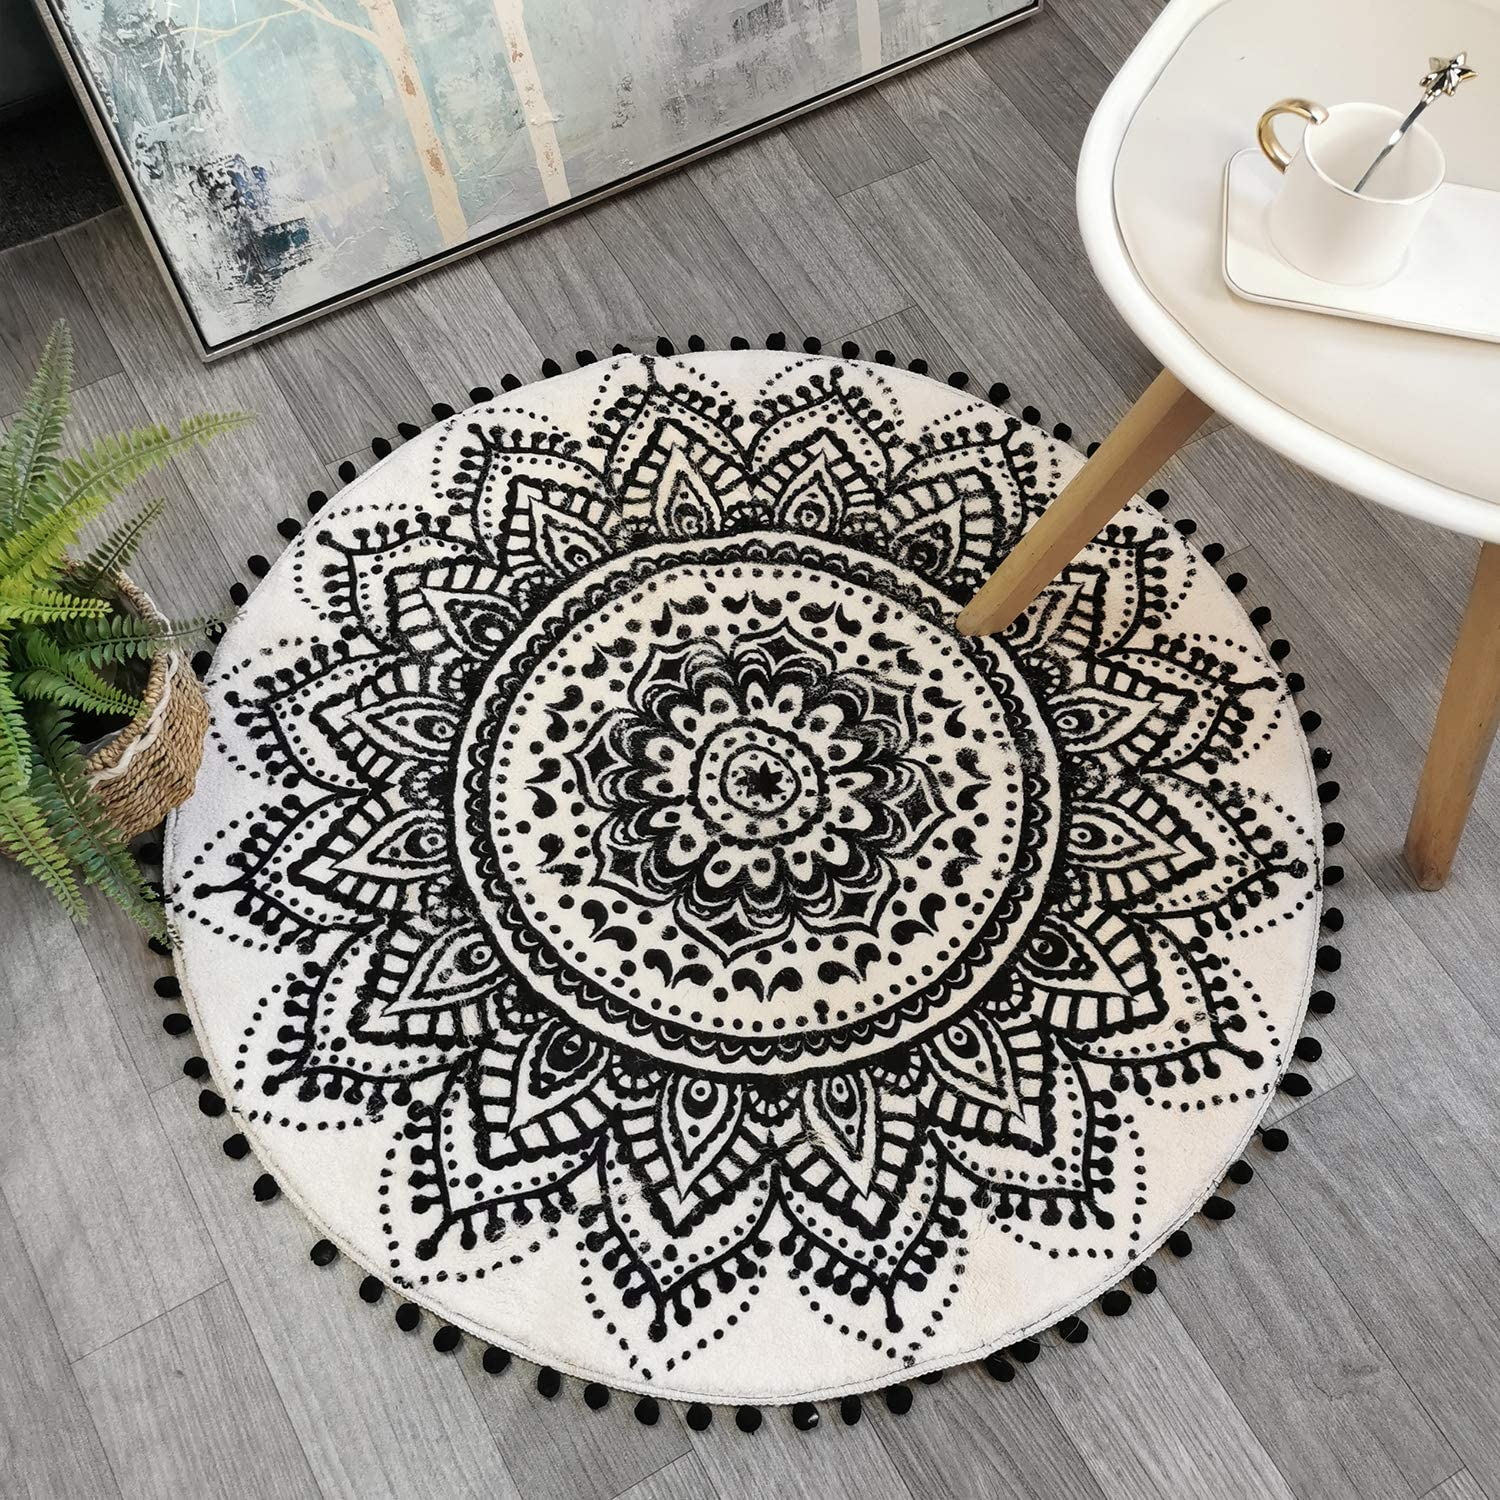 Uphome Round Area Rug 3' Diameter with Chic Pom Pom Fringe Boho Blue Mandala Velvet Accent Throw Rugs Non-Slip Soft Floor Carpet Machine-Washable for Living